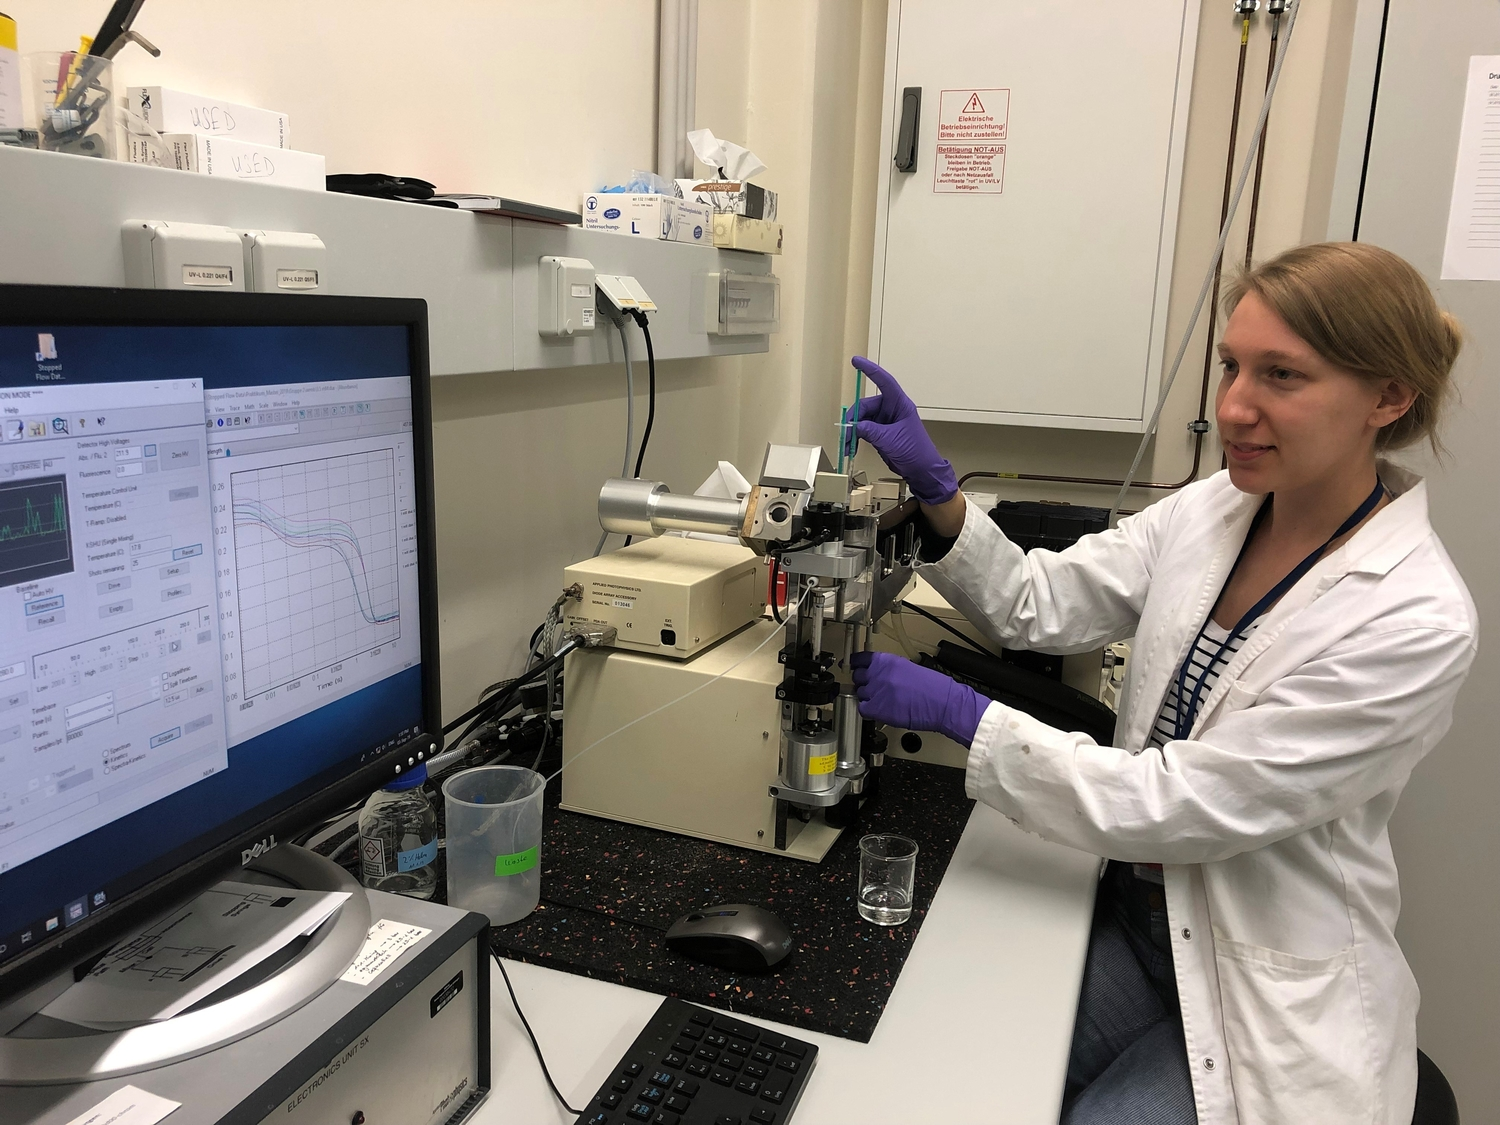 Lisa-Marie Funk, co-first author, analysing the mechanism of a protein using specialist biophysical methods in the lab.